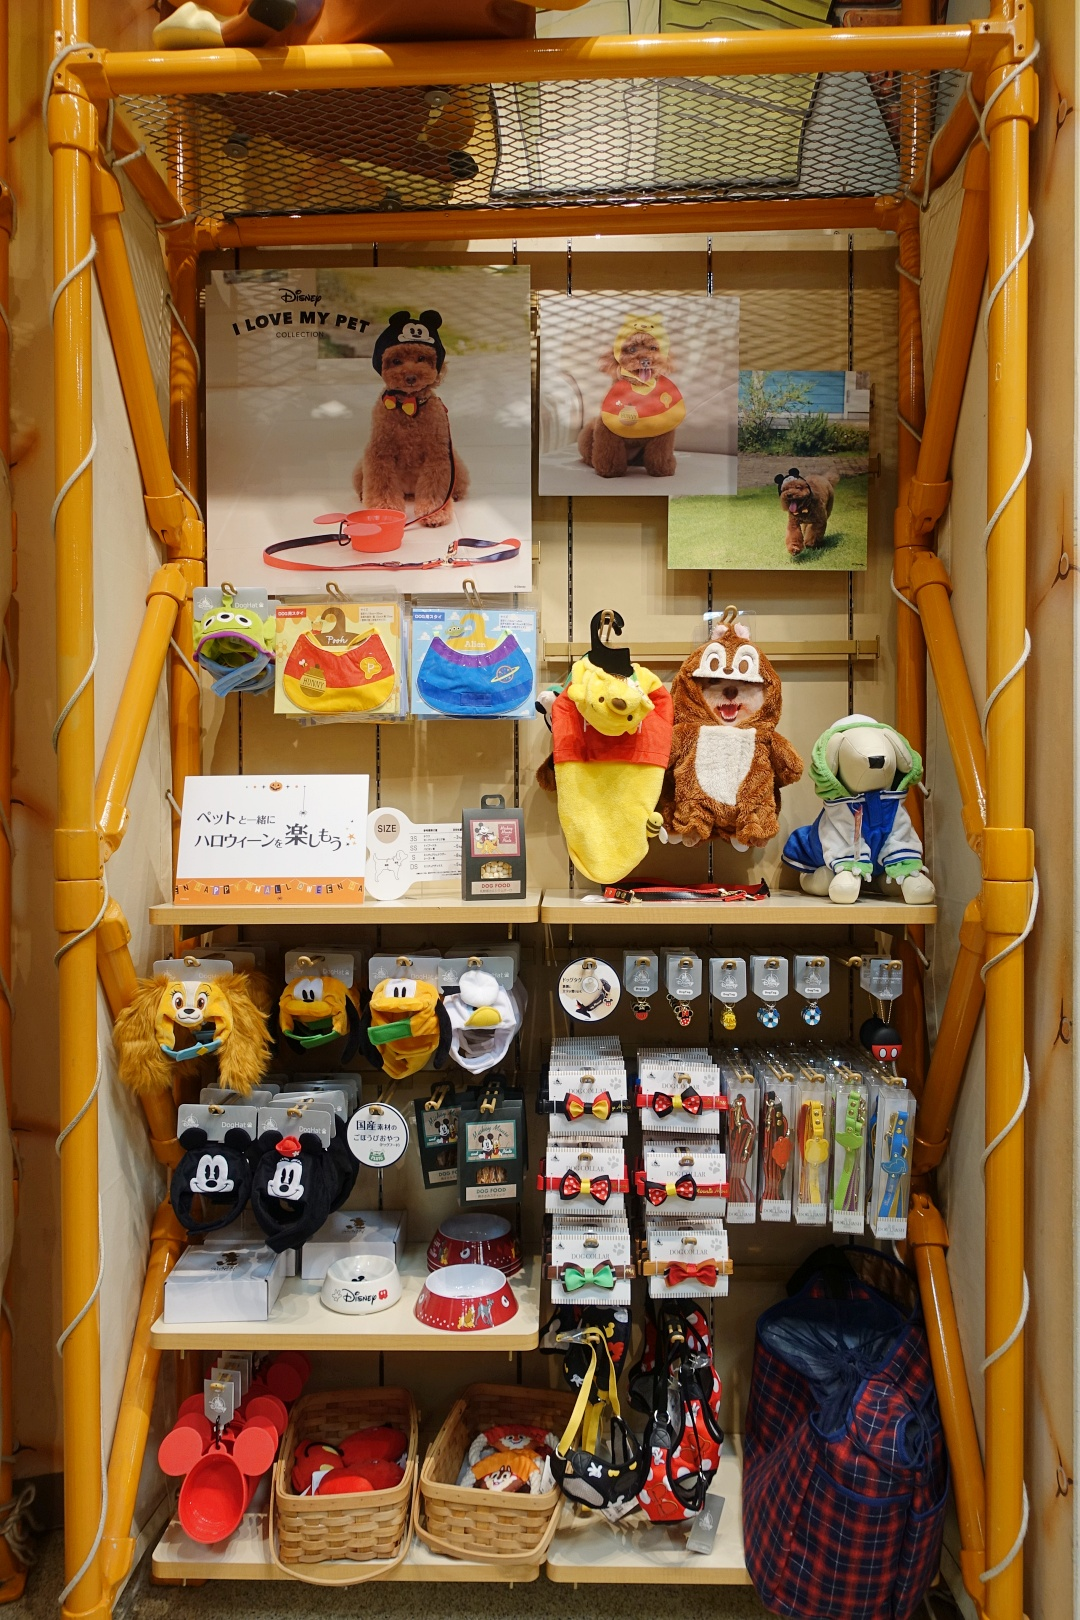 Japan Osaka Disney Store (Umeda HEP FIVE) - Disney Pet Collection | joanne-khoo.com